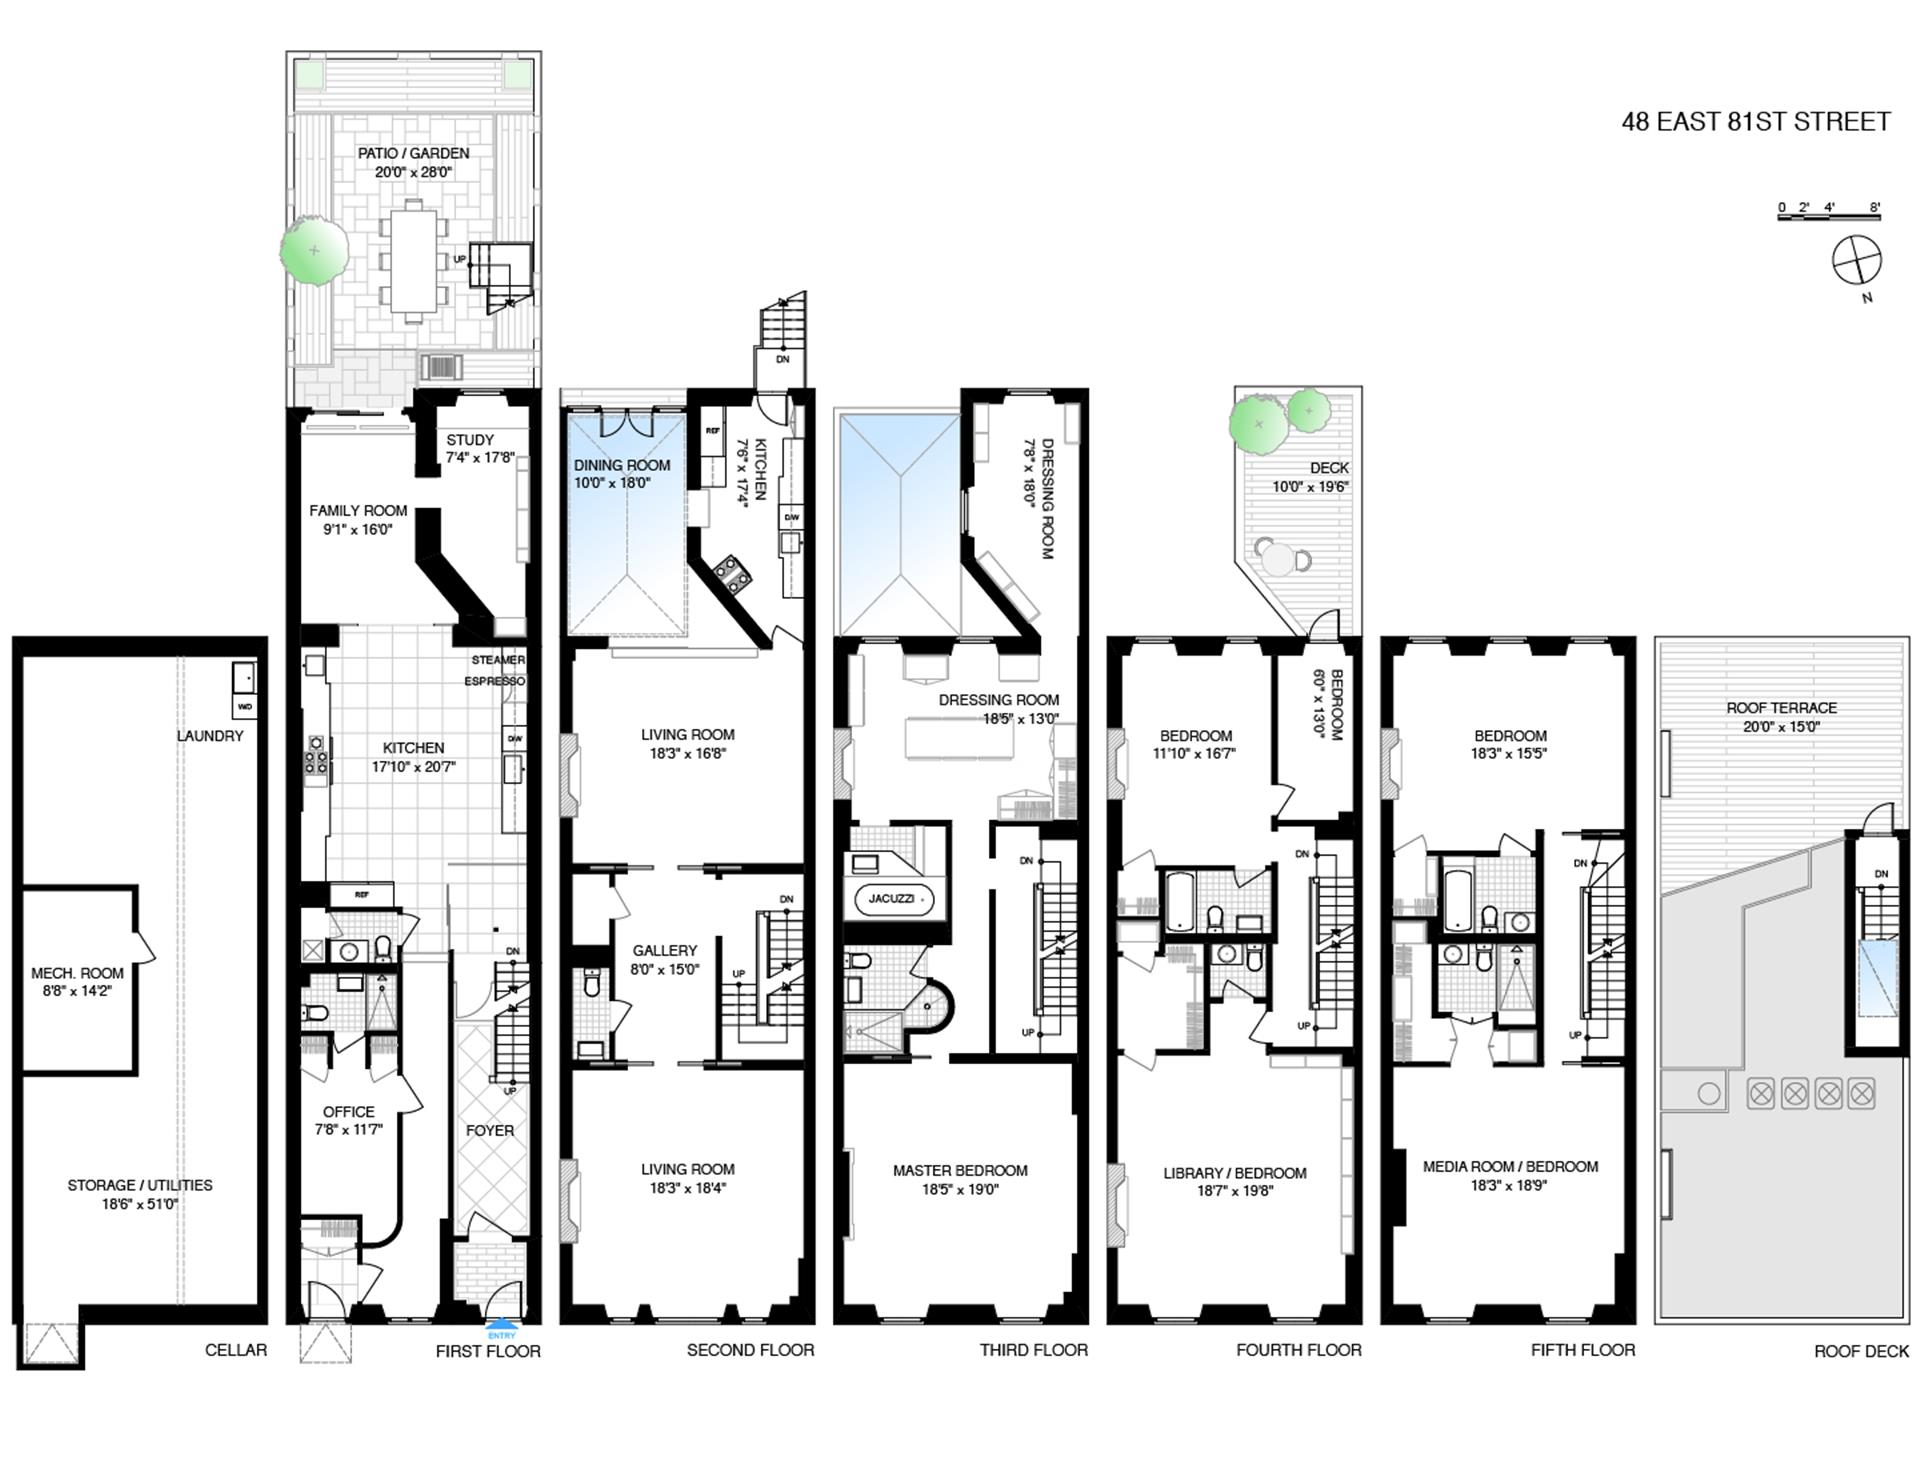 Floor plan of 48 East 81st St - Upper East Side, New York